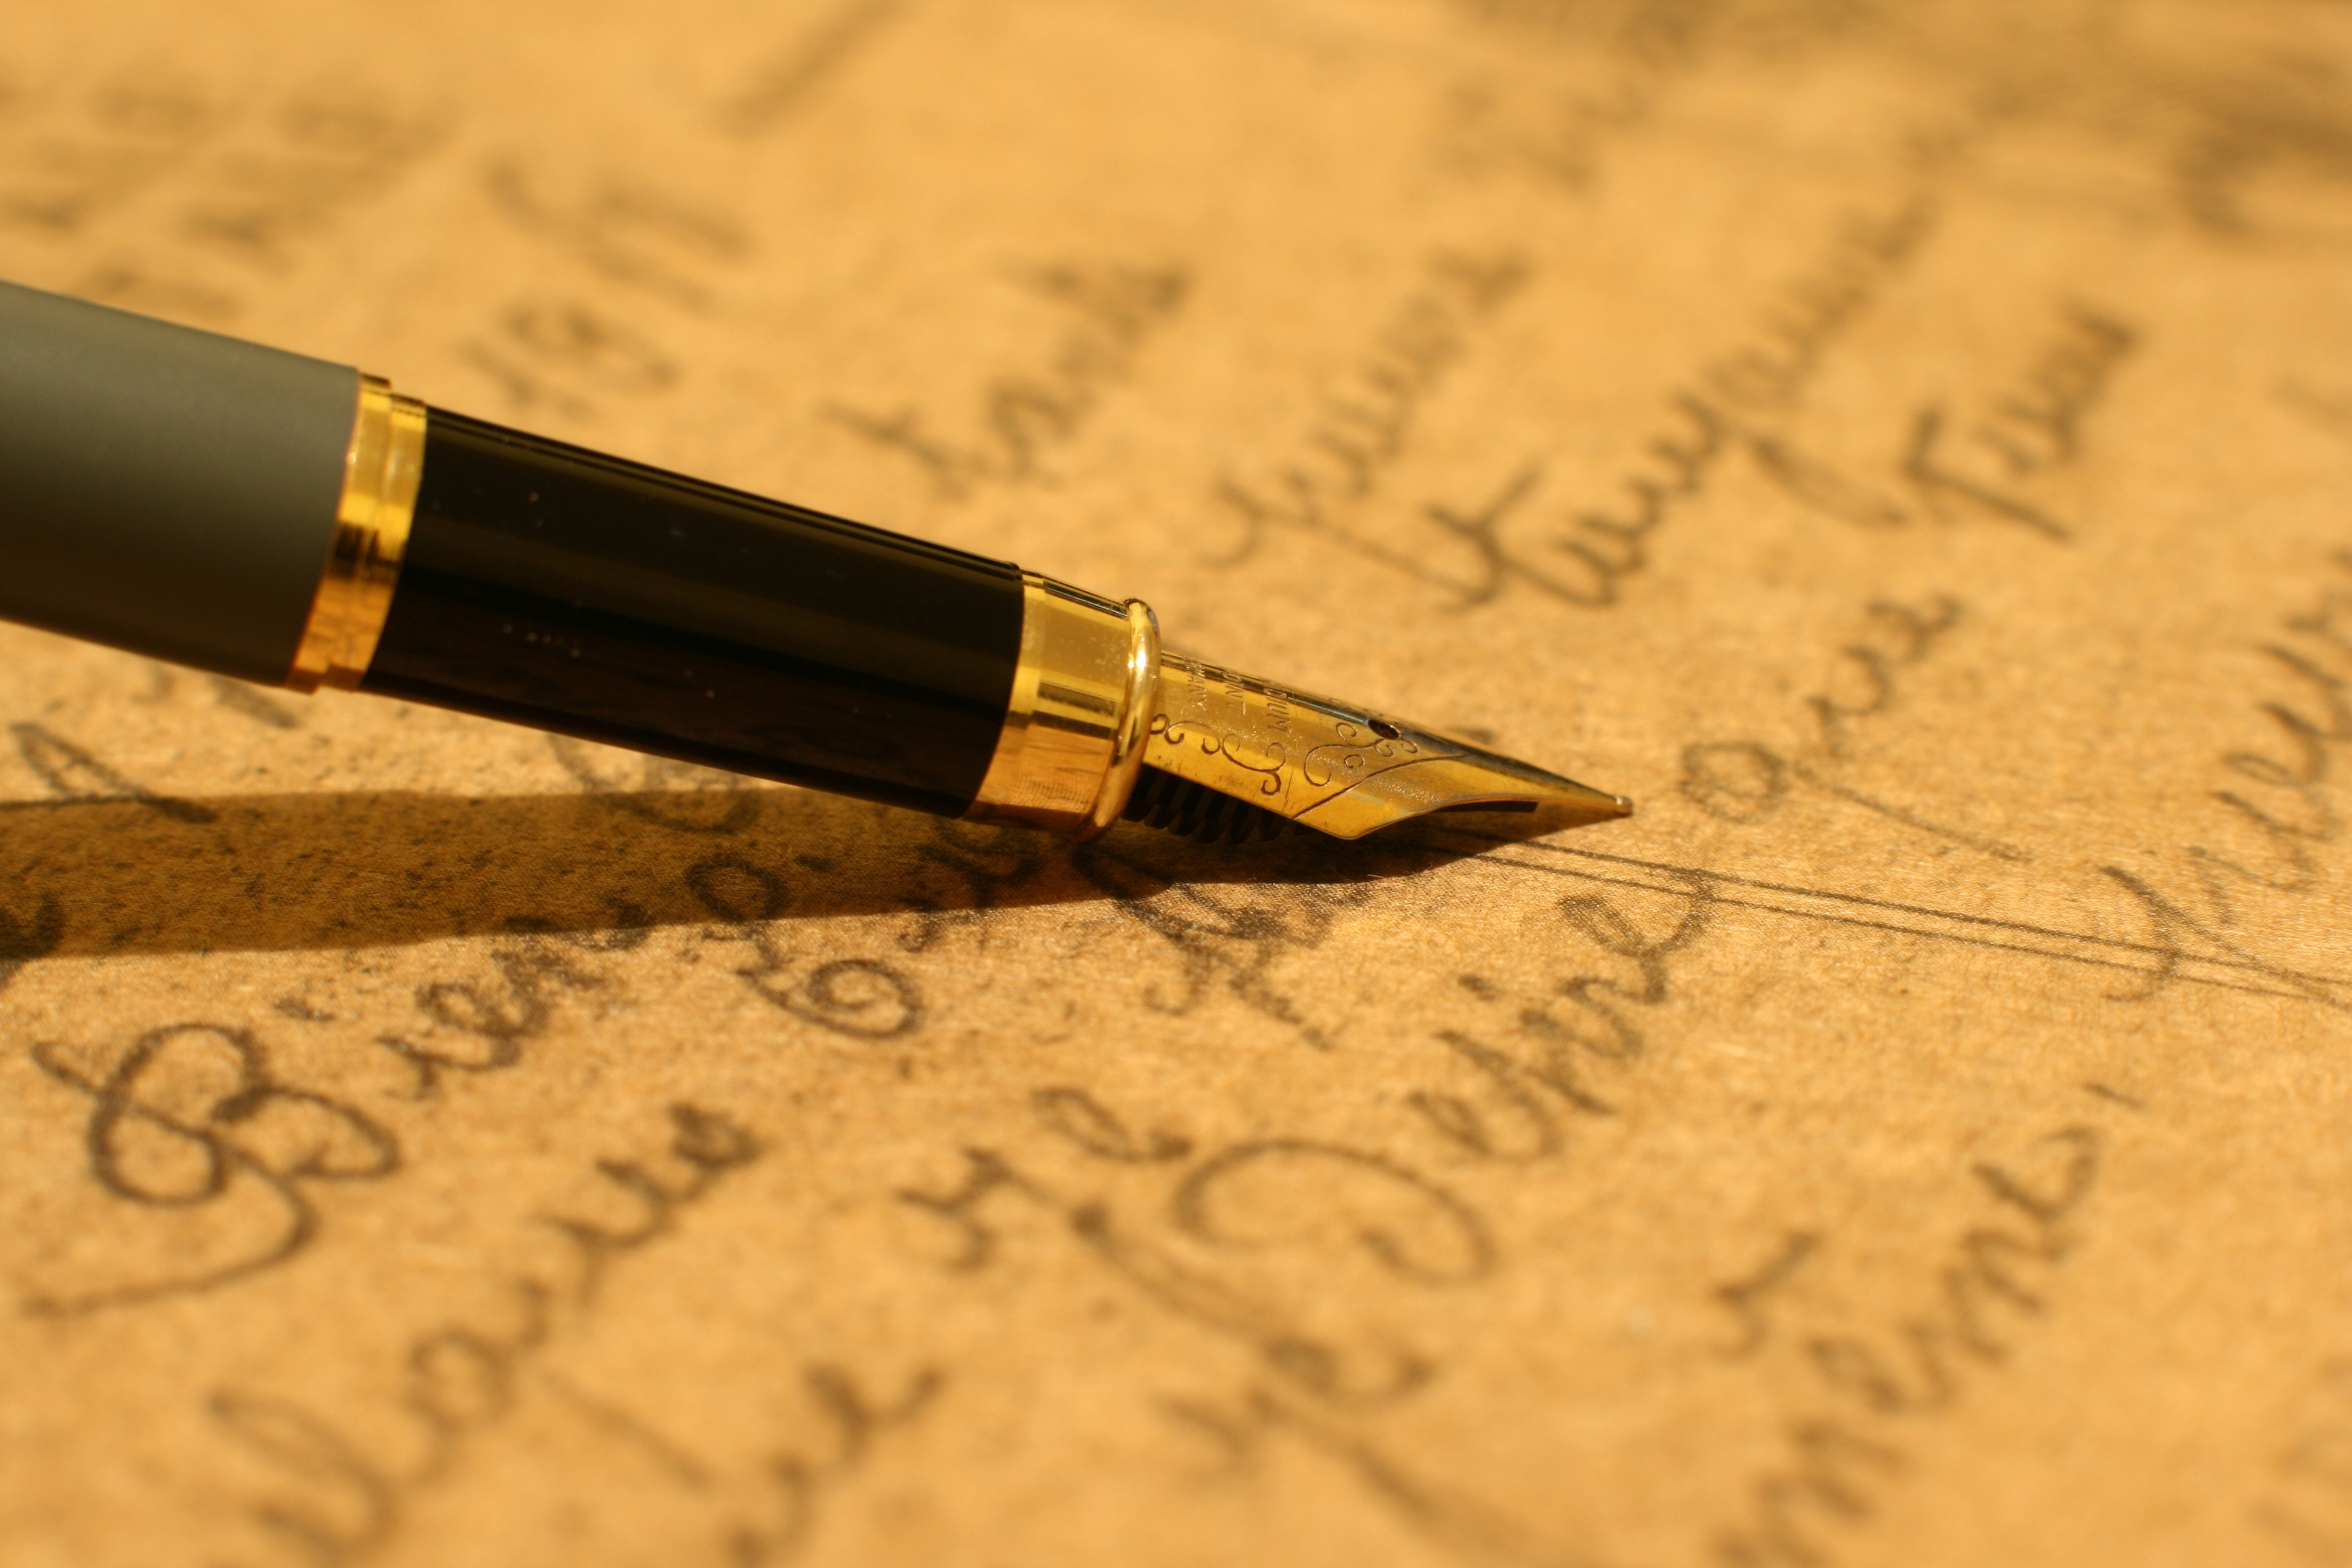 dickens project high school essay contest